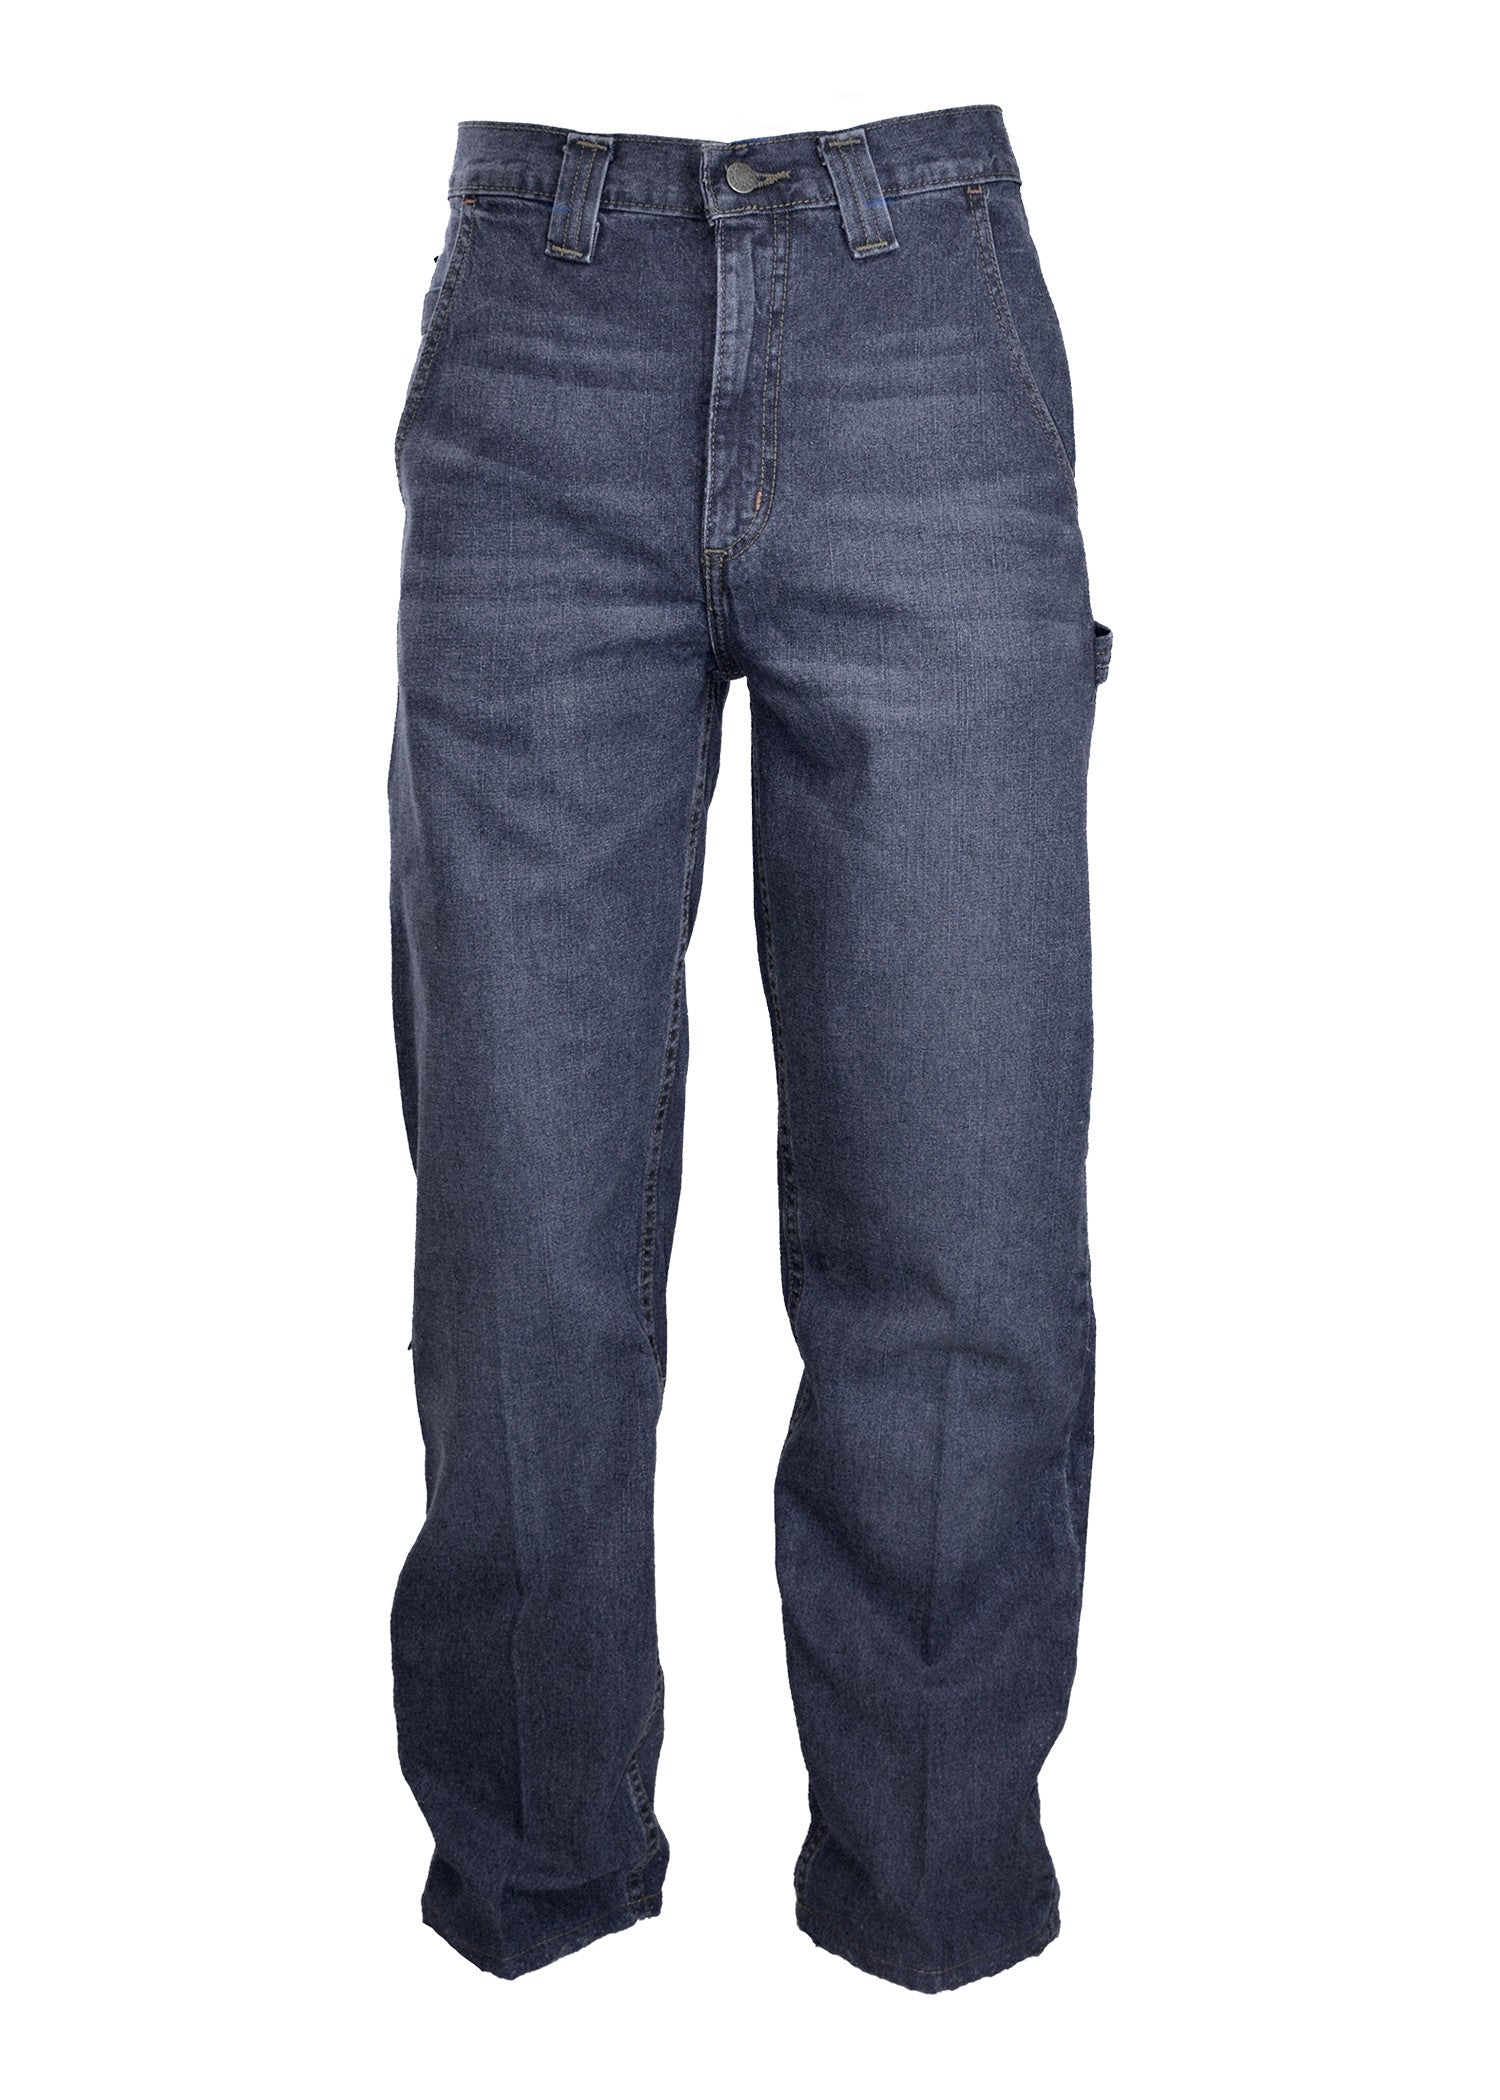 FR Carpenter Jeans - Medium Washed Denim